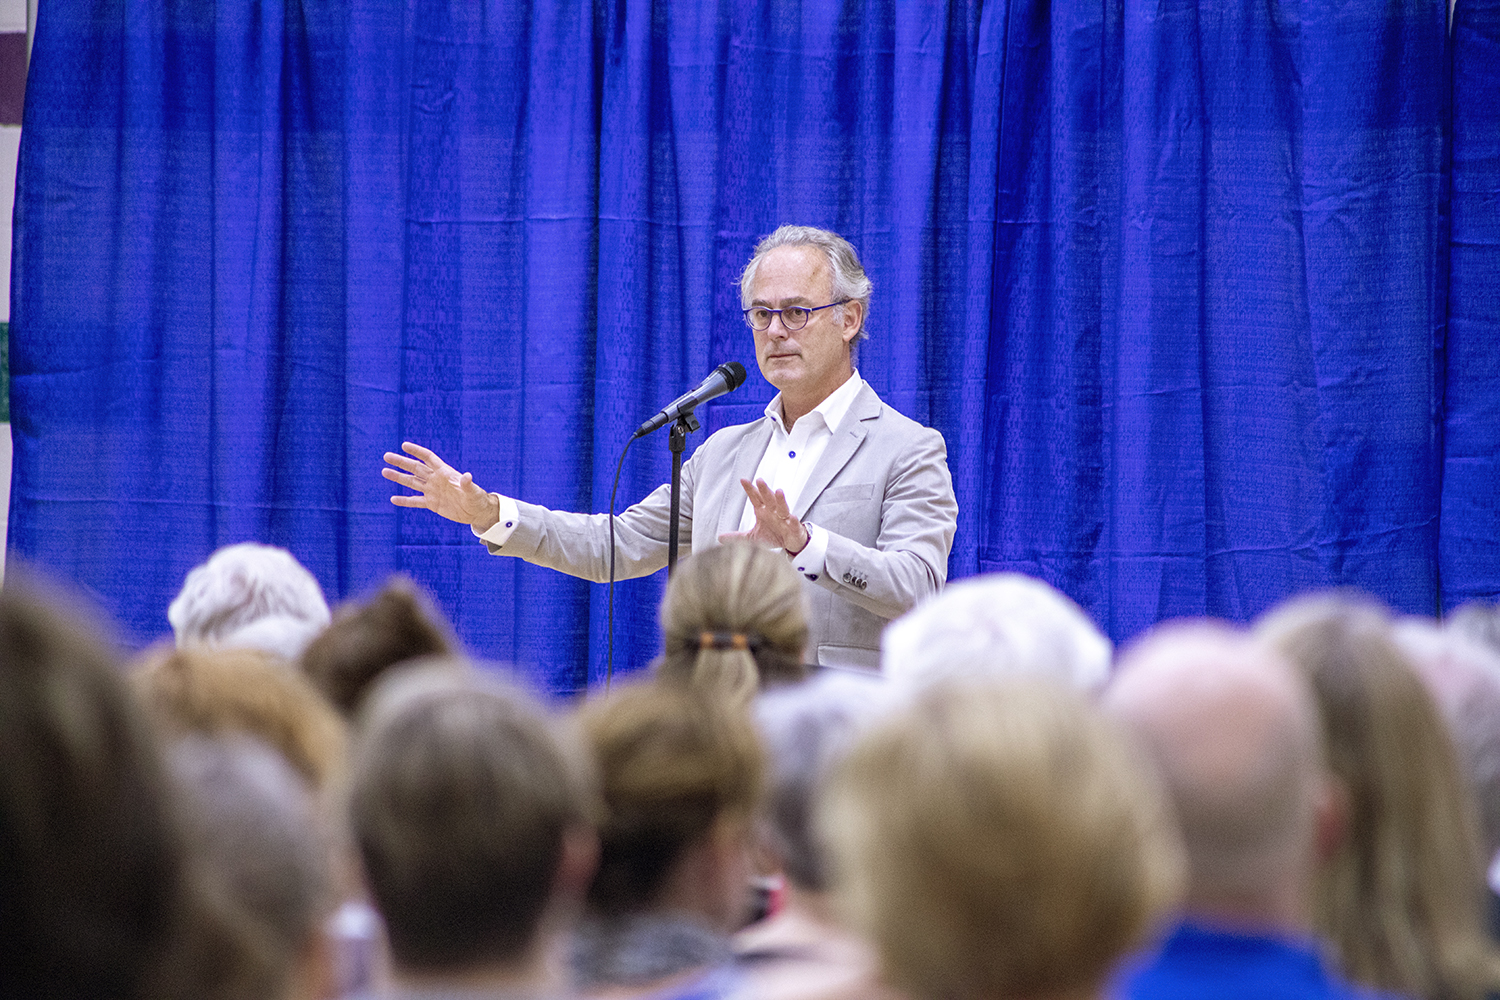 Amor Towles discusses his book, A Gentleman in Moscow, at the North Liberty Recreation Center on Monday, Sept. 9, 2019.